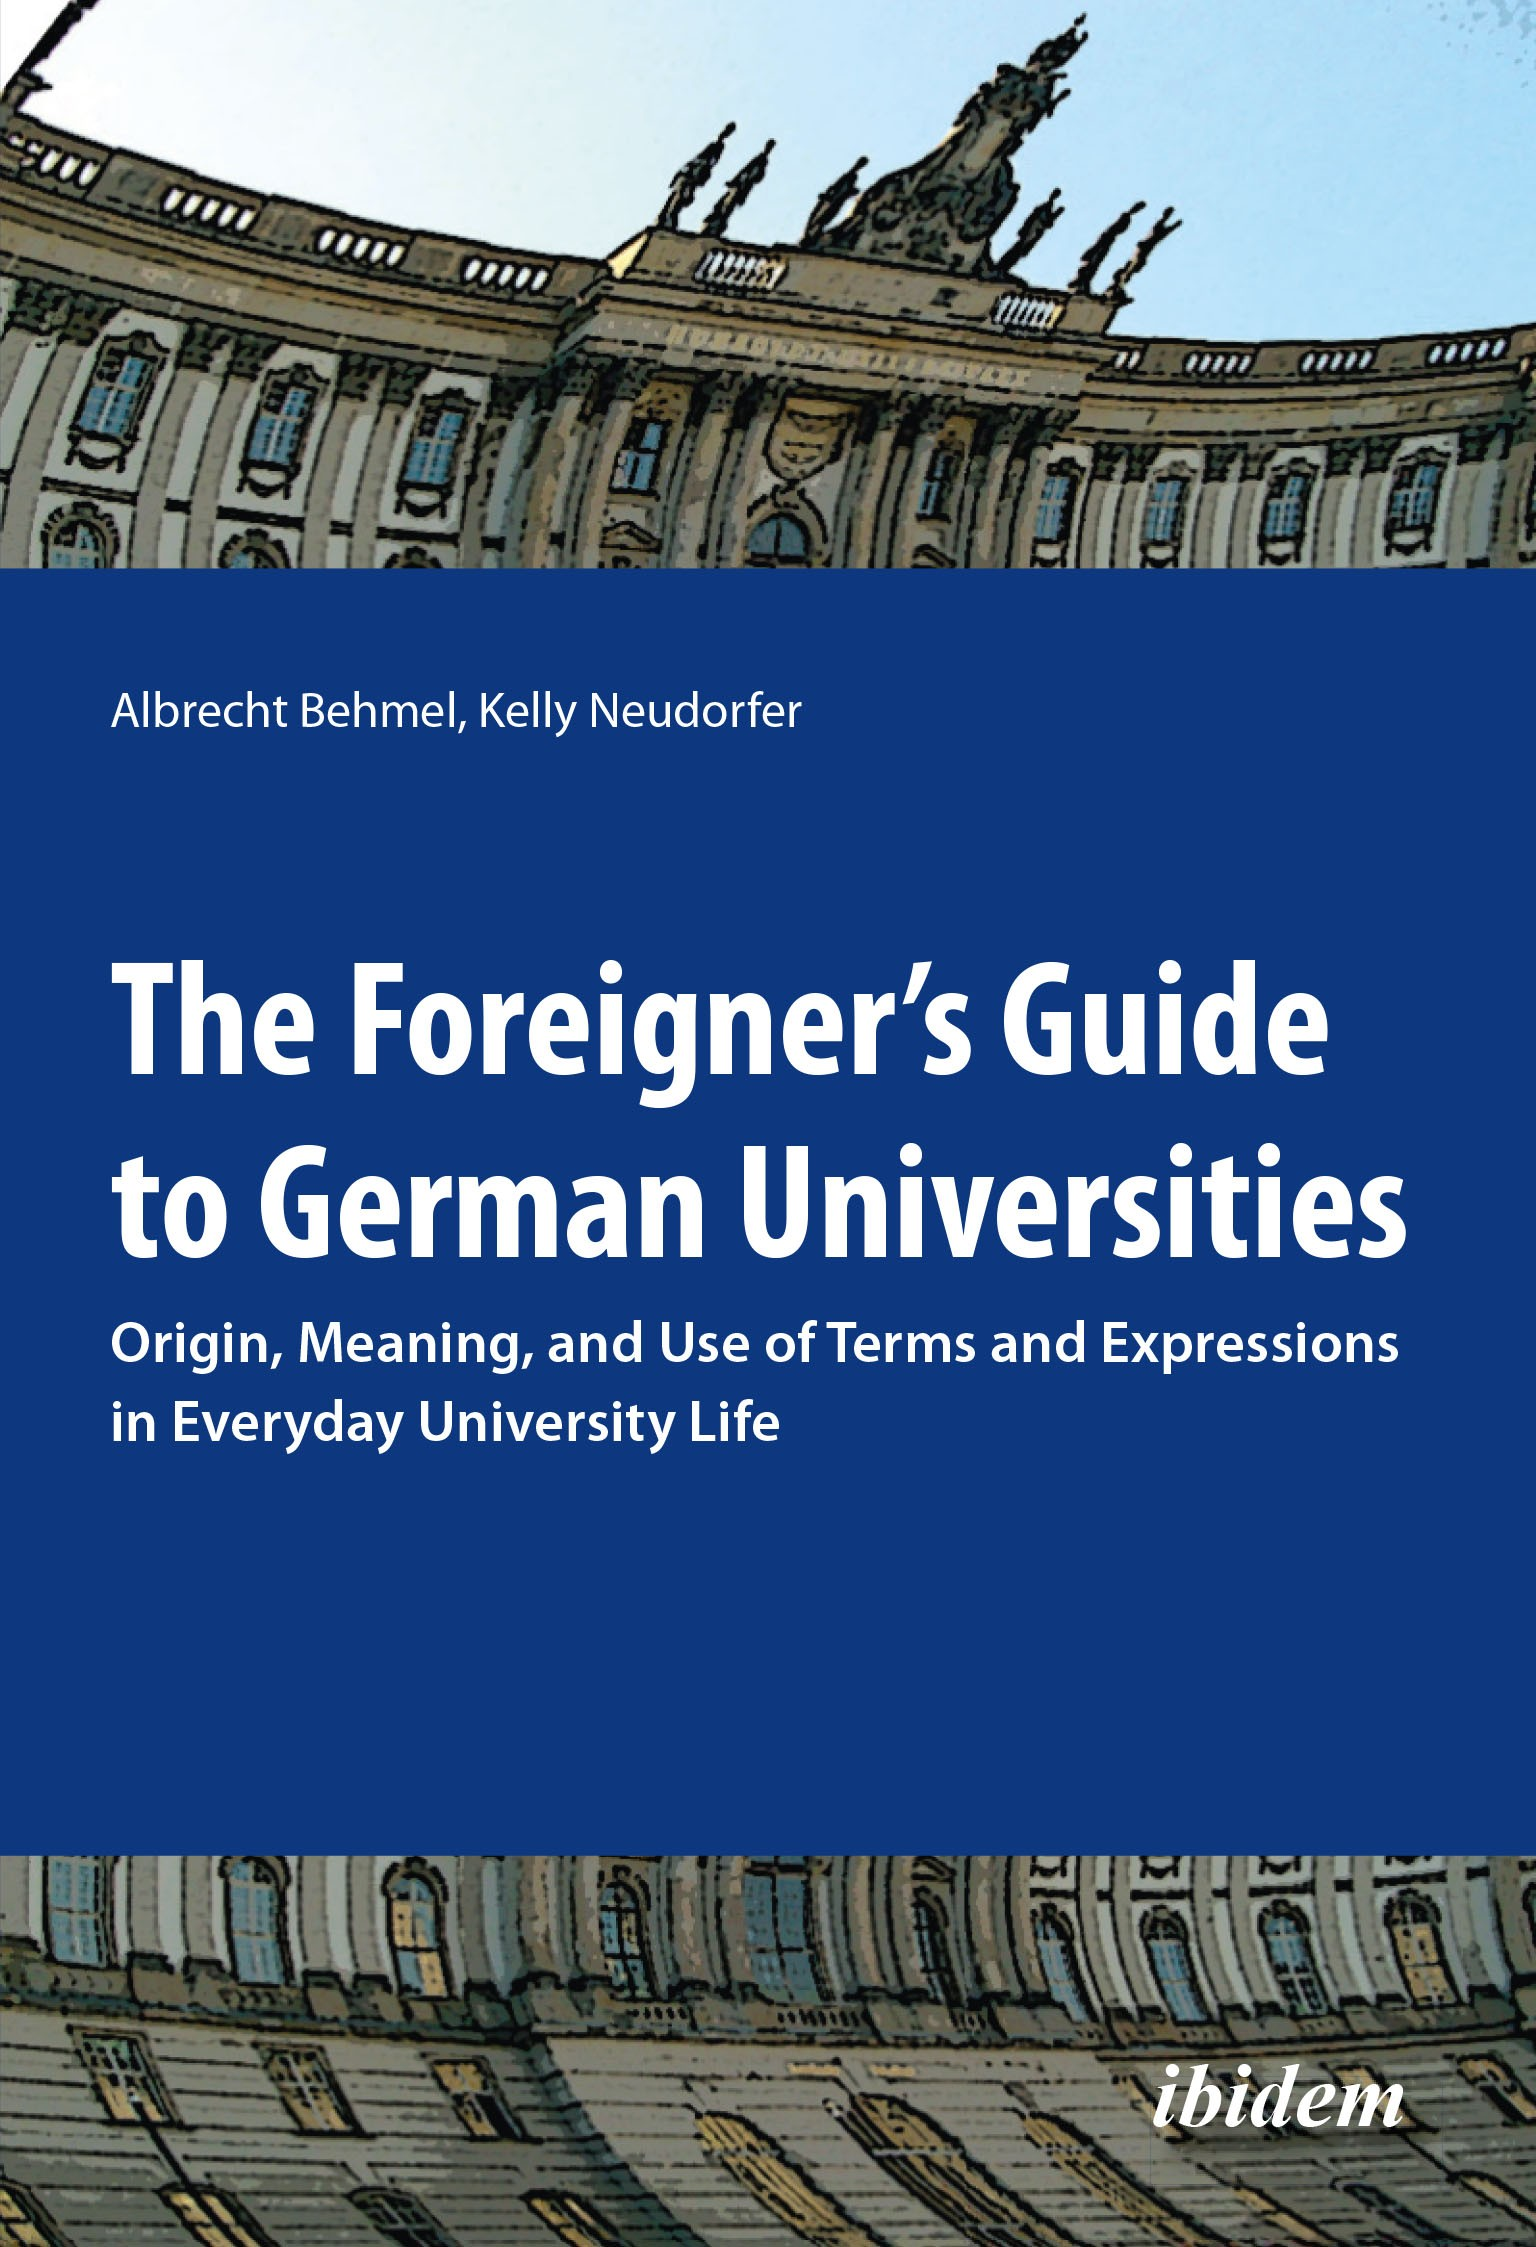 The Foreigner's Guide to German Universities